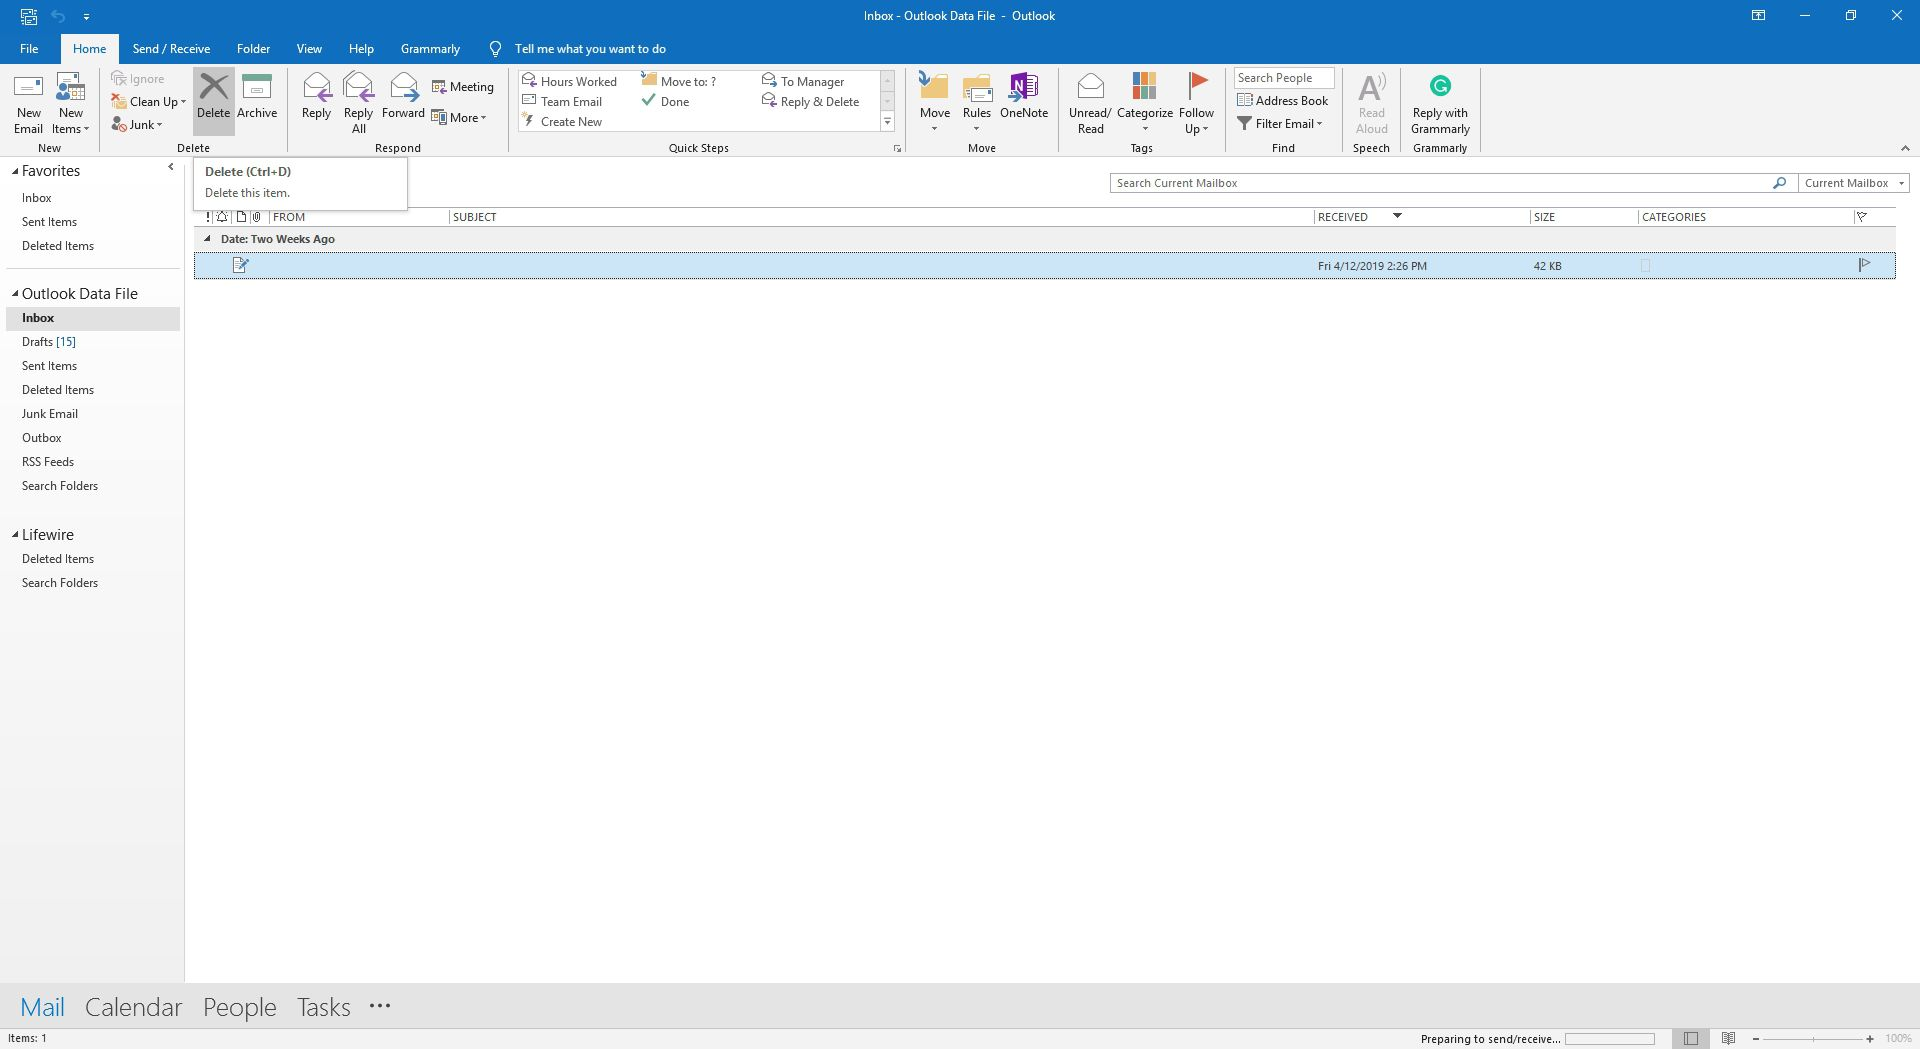 The Delete group in Outlook.